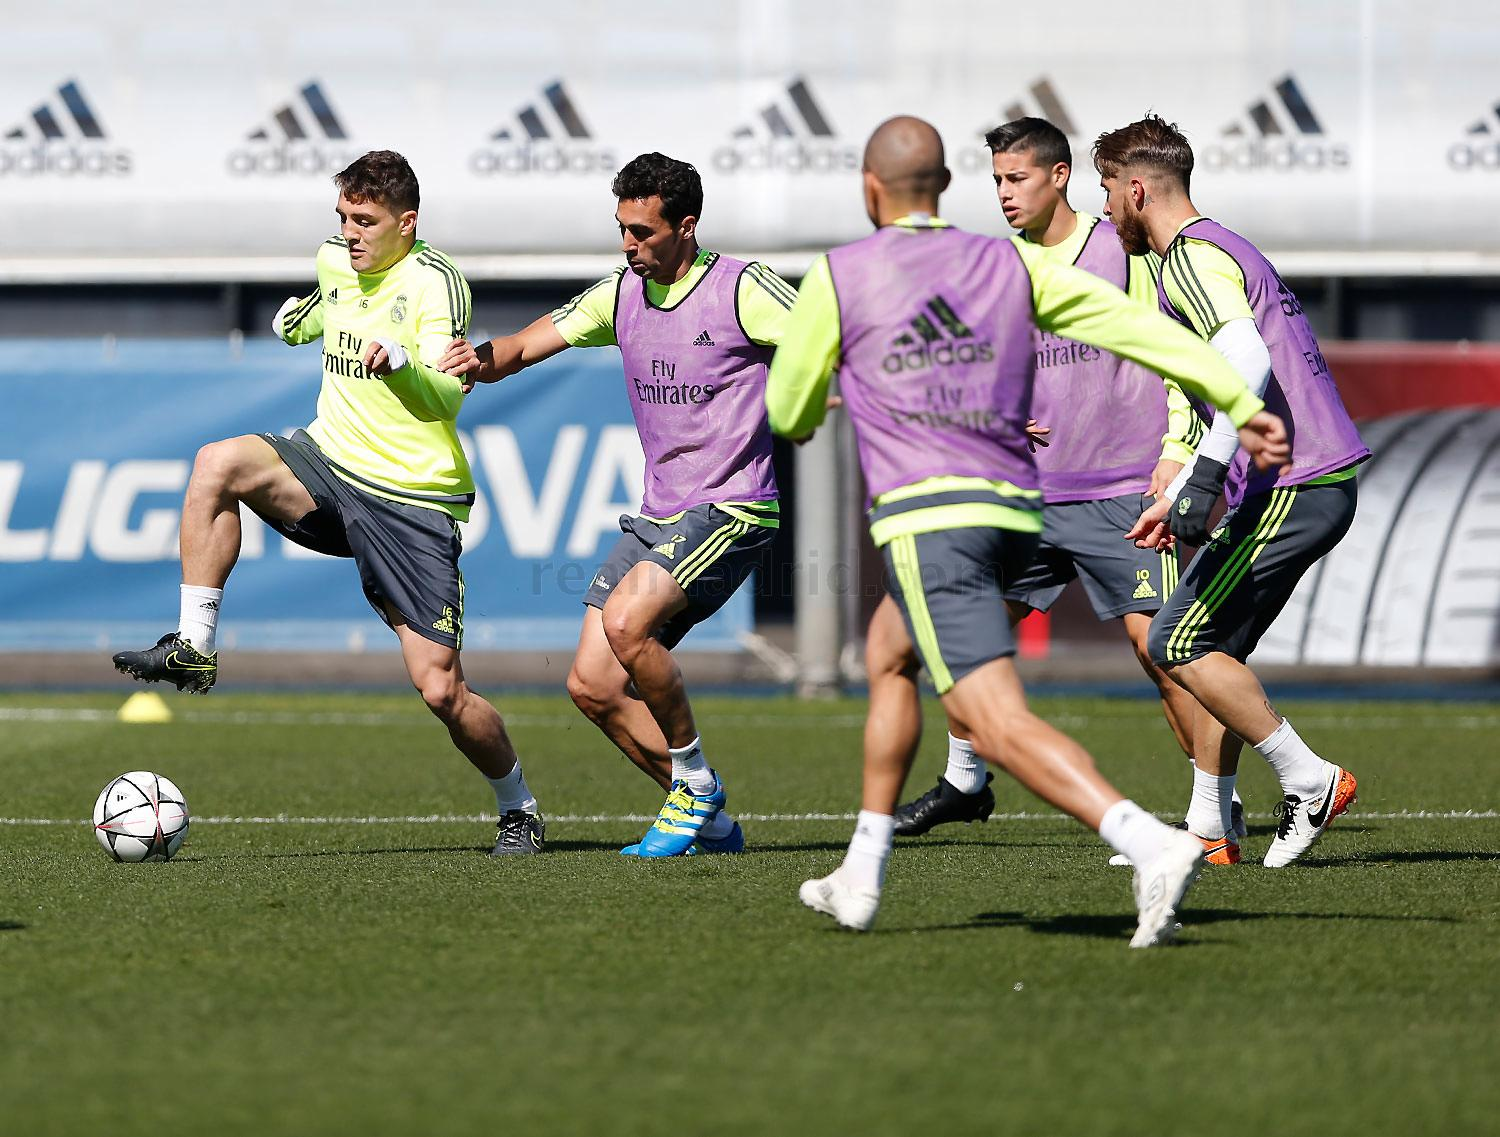 Real Madrid - Entrenamiento del Real Madrid - 02-05-2016